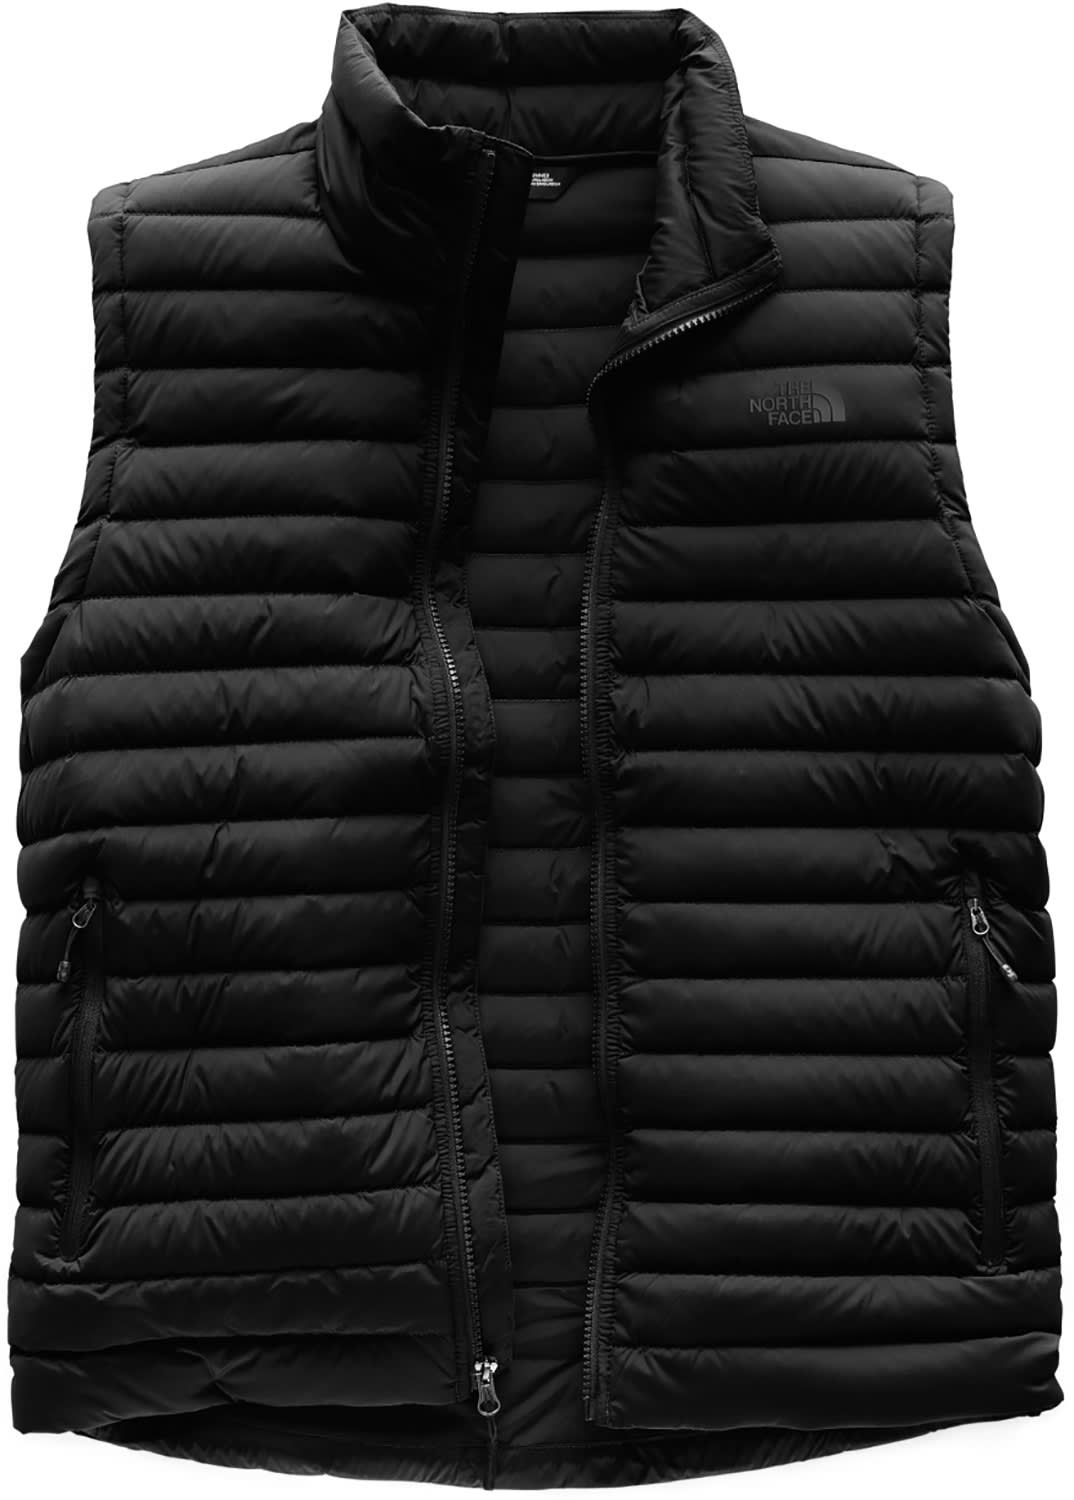 The North Face Stretch Down DWR Vest 2019